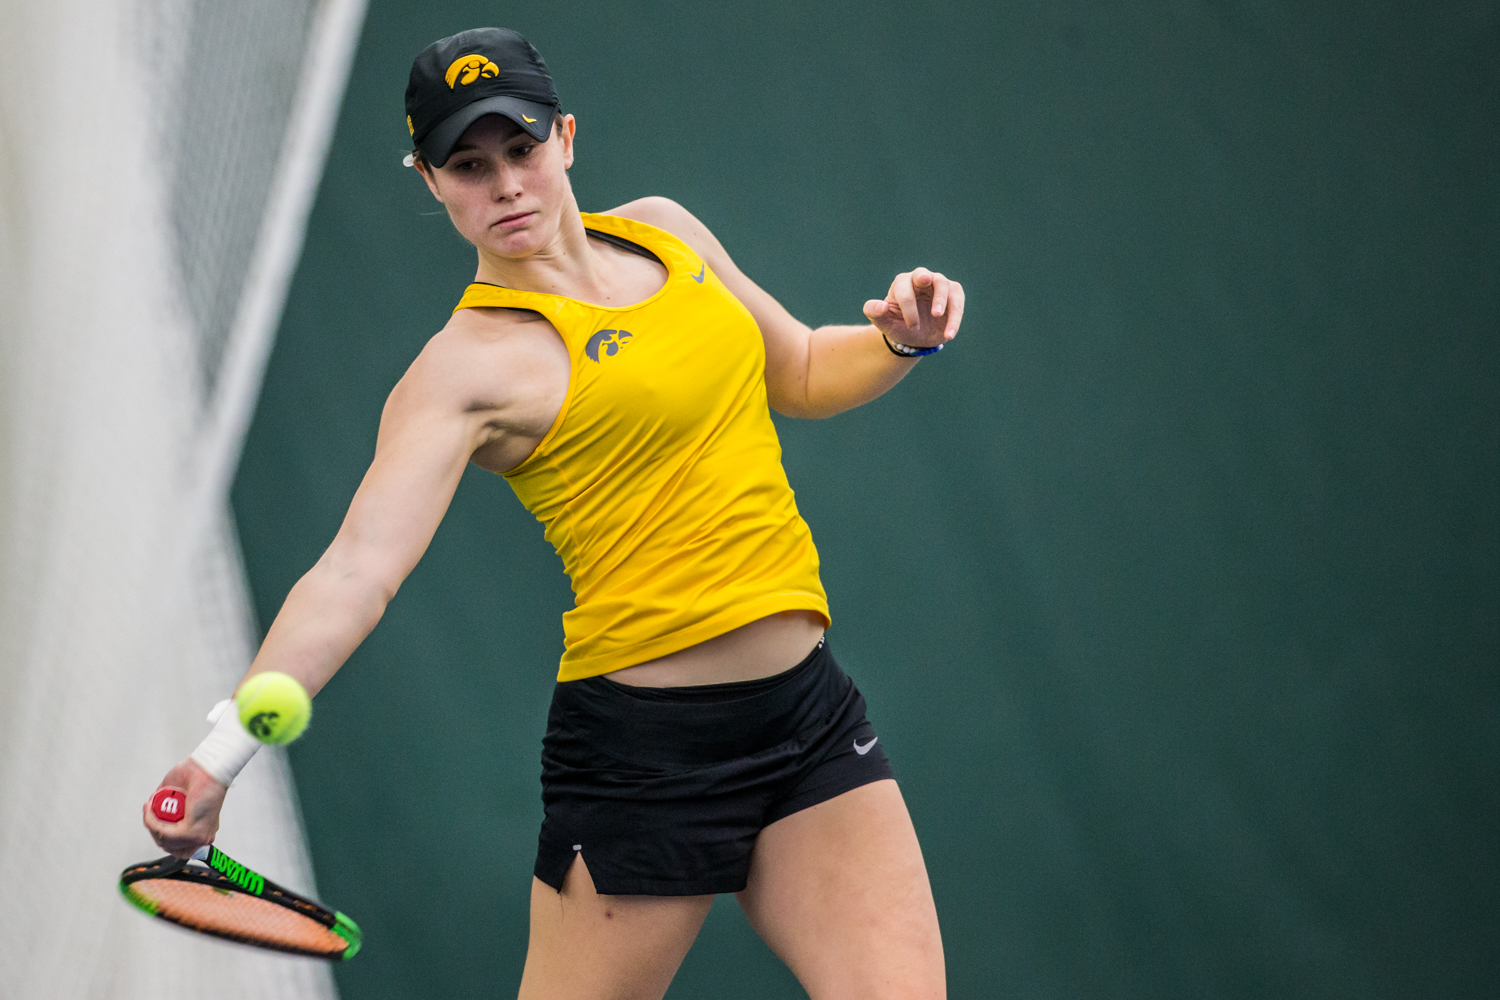 Iowa%27s+Elise+Van+Heuvelen+Treadwell+hits+a+forehand+during+a+women%27s+tennis+matchup+between+Iowa+and+Iowa+State+at+the+Hawkeye+Tennis+and+Recreation+Complex+on+Friday%2C+February+8%2C+2019.++The+Hawkeyes+dropped+the+doubles+point+but+swept+singles+matches%2C+defeating+the+Cyclones+4-1.